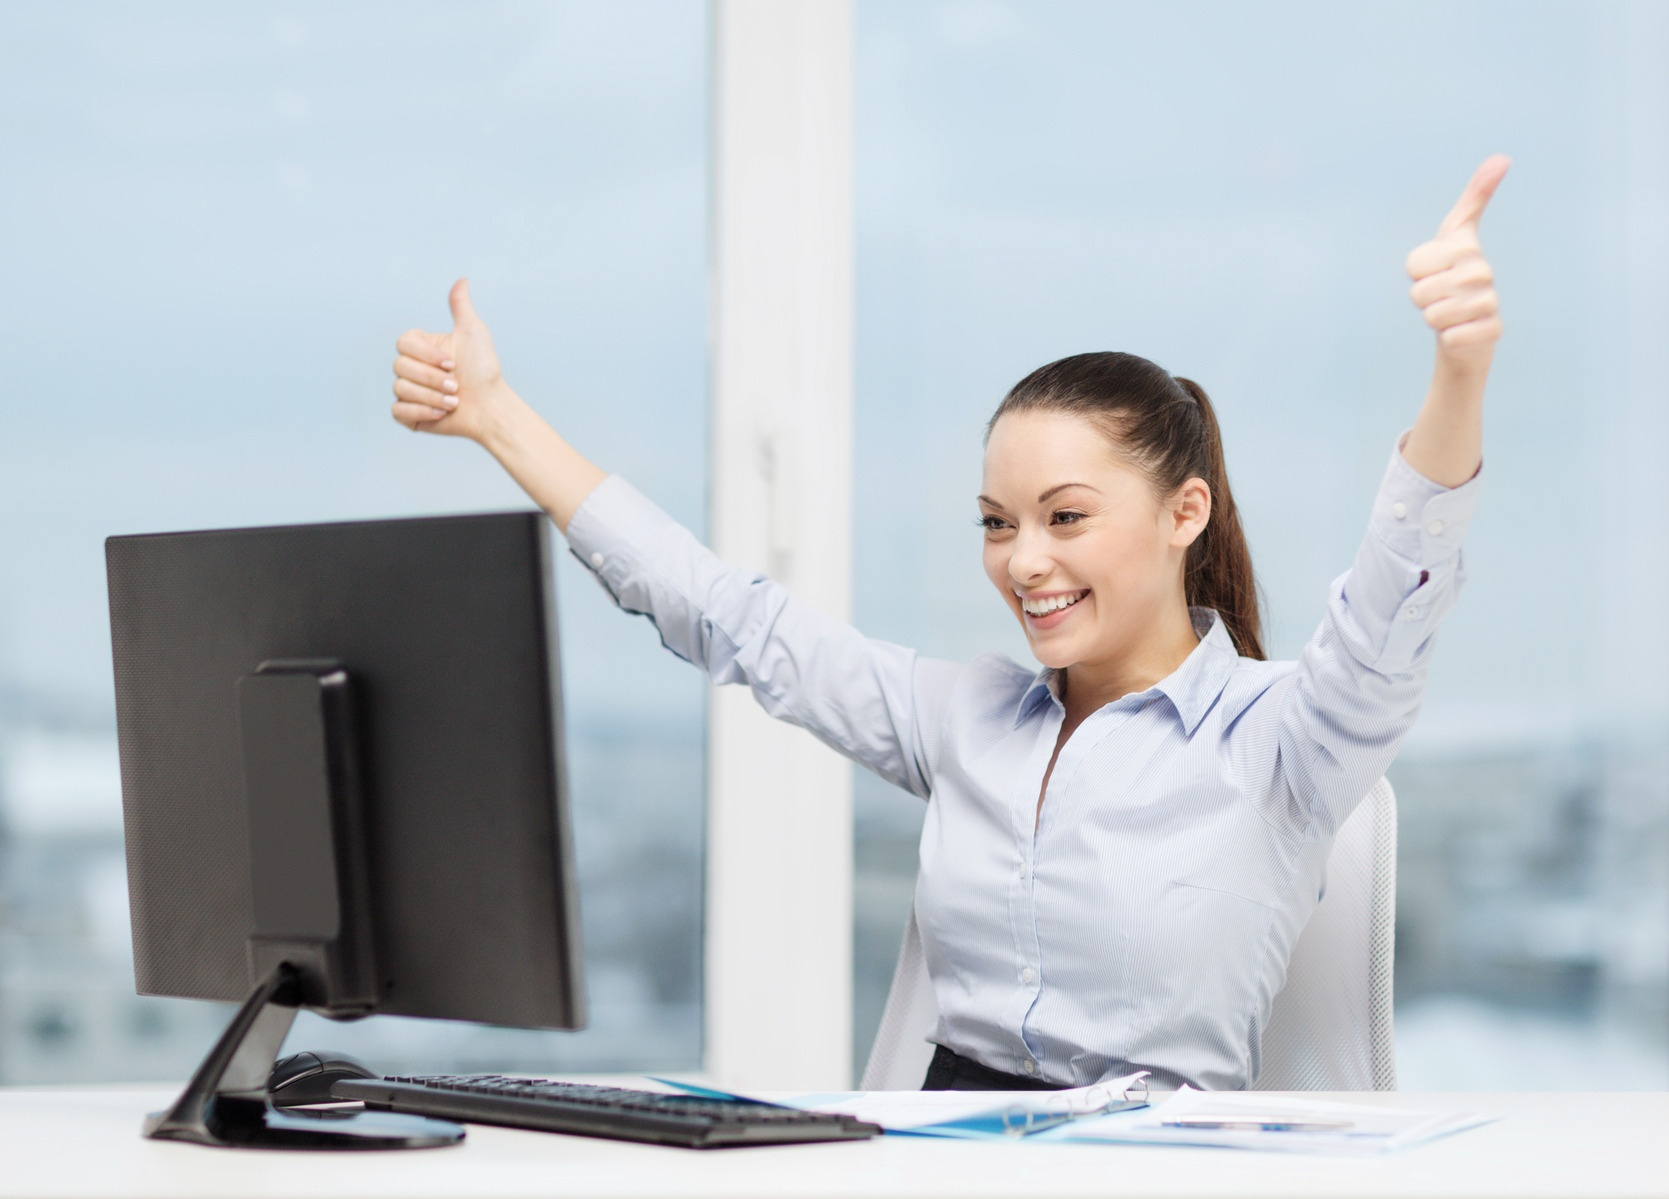 woman-with-computer-papers-showing-thumbs-up-m.jpg